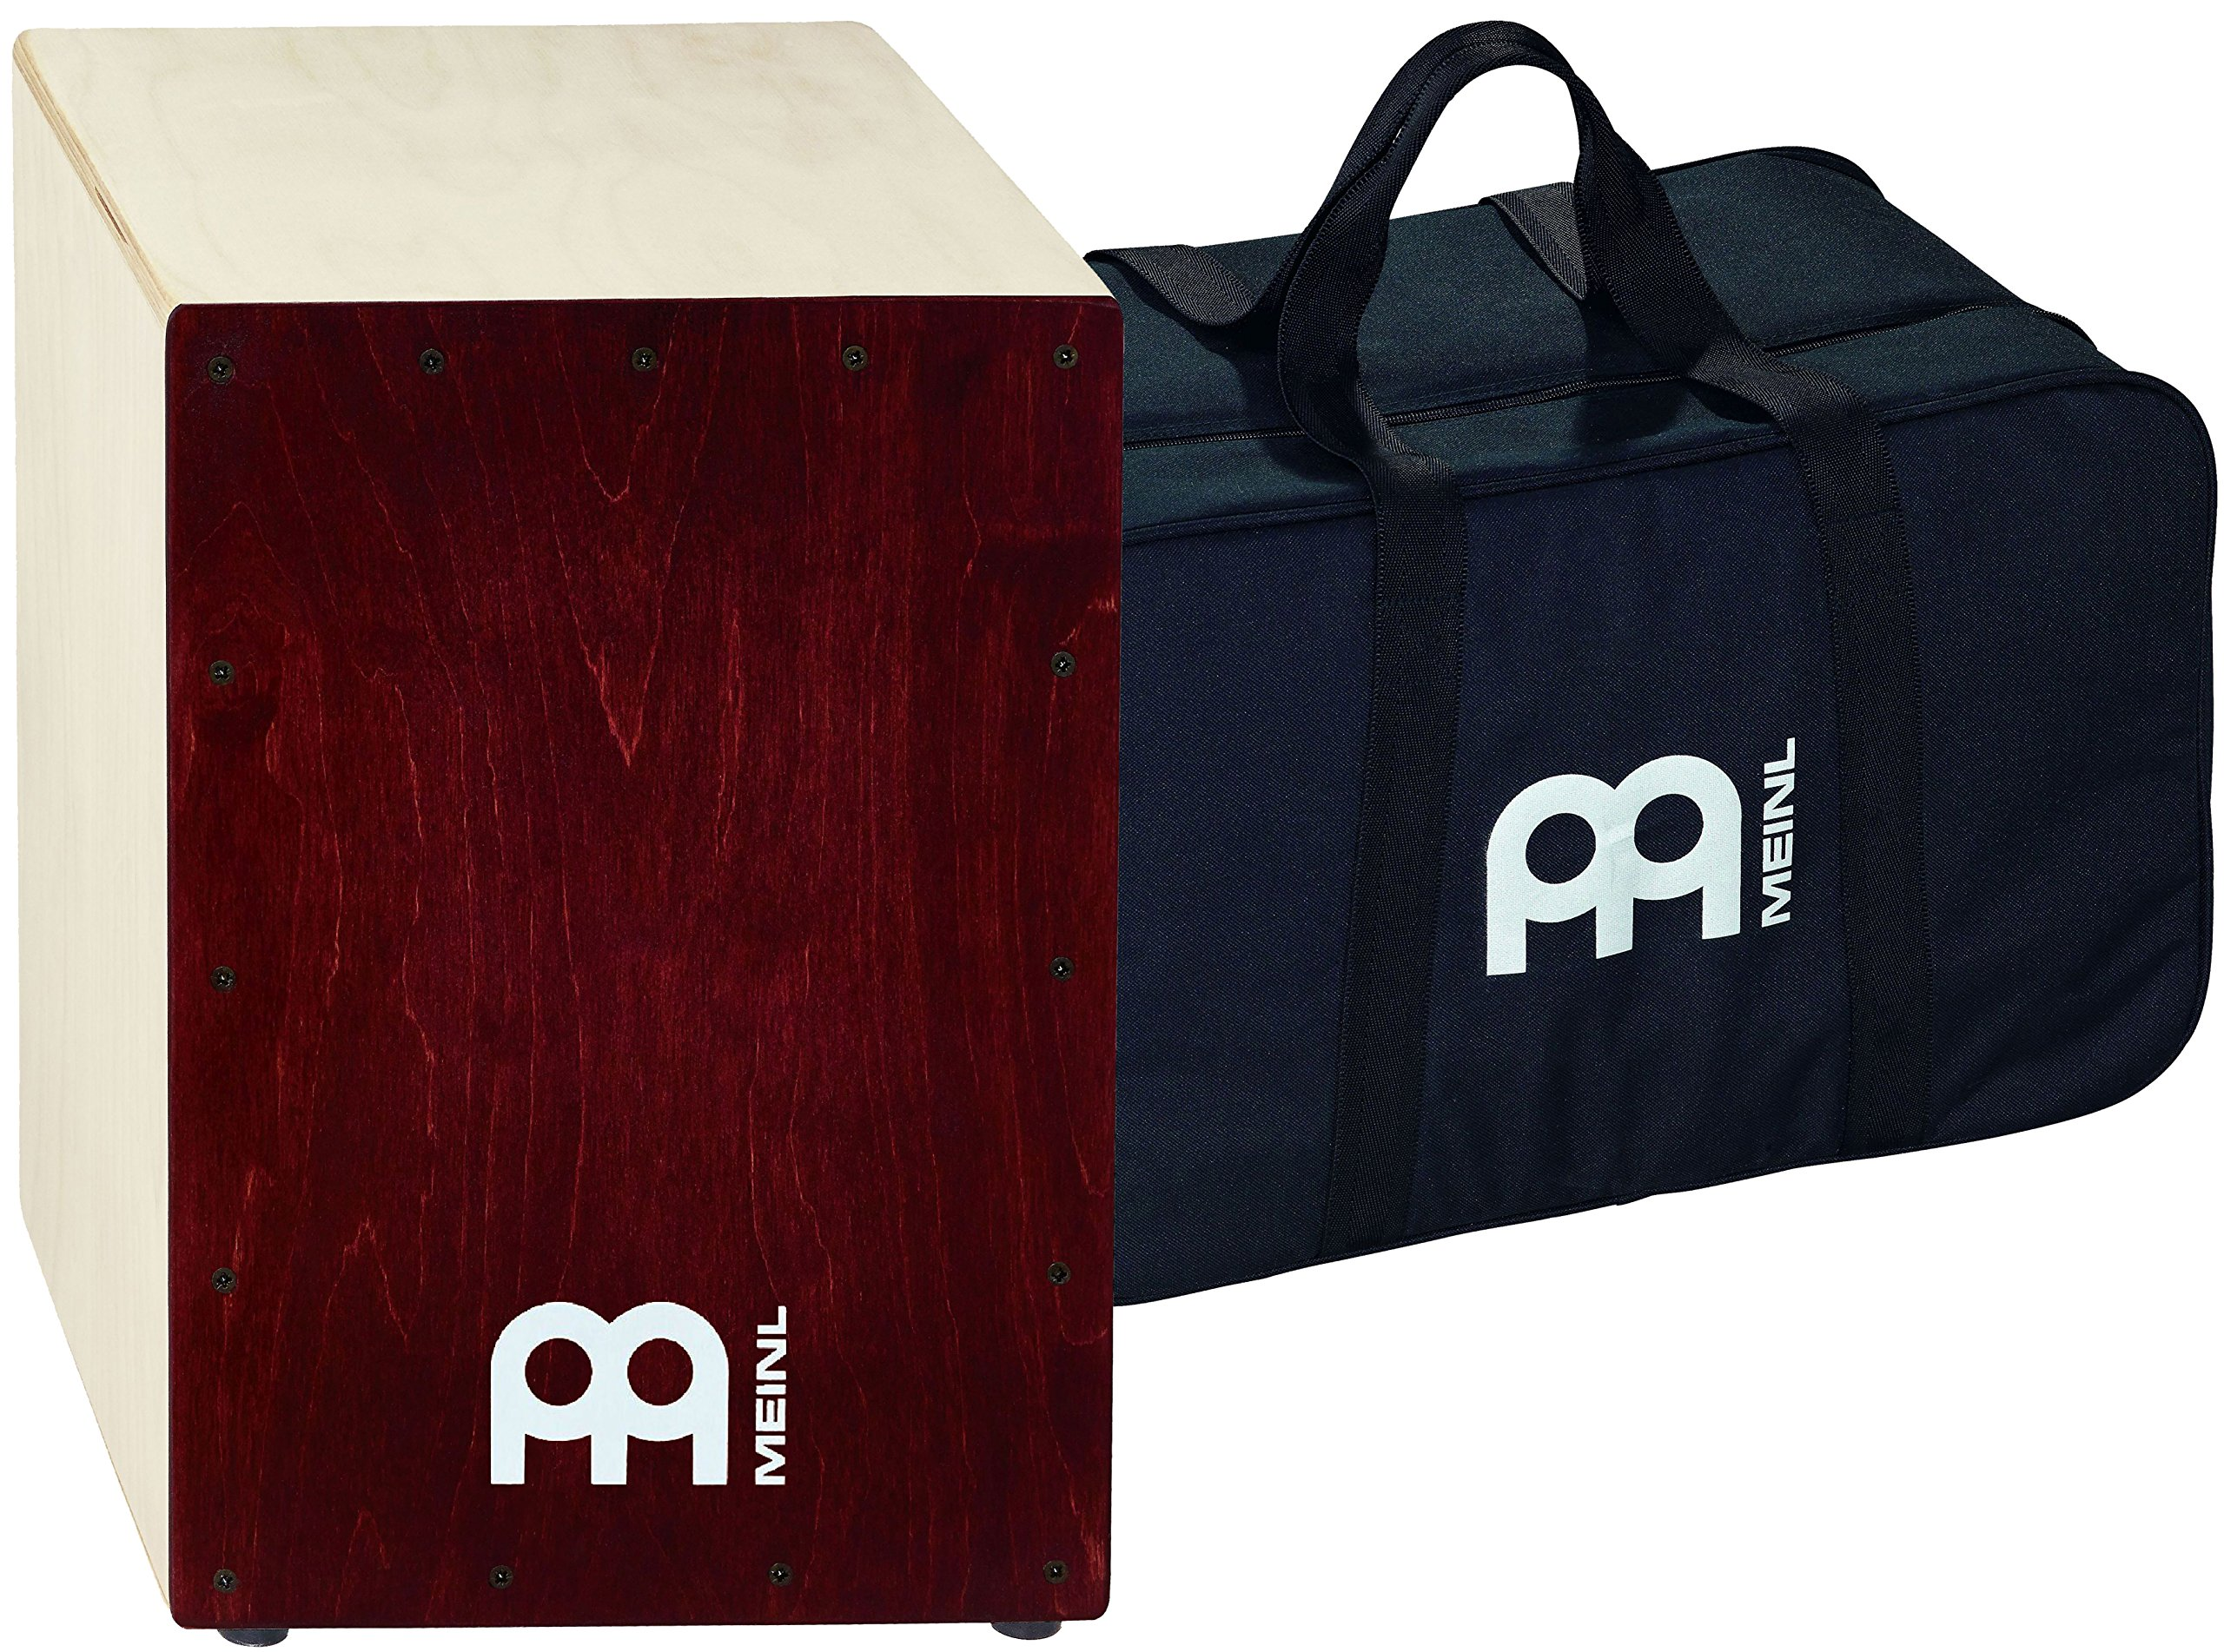 Meinl Cajon Box Drum with Internal Snares and FREE Bag - MADE IN EUROPE - Baltic Birch Wood Full Size, 2-YEAR WARRANTY (BC1NTWR) by Meinl Percussion